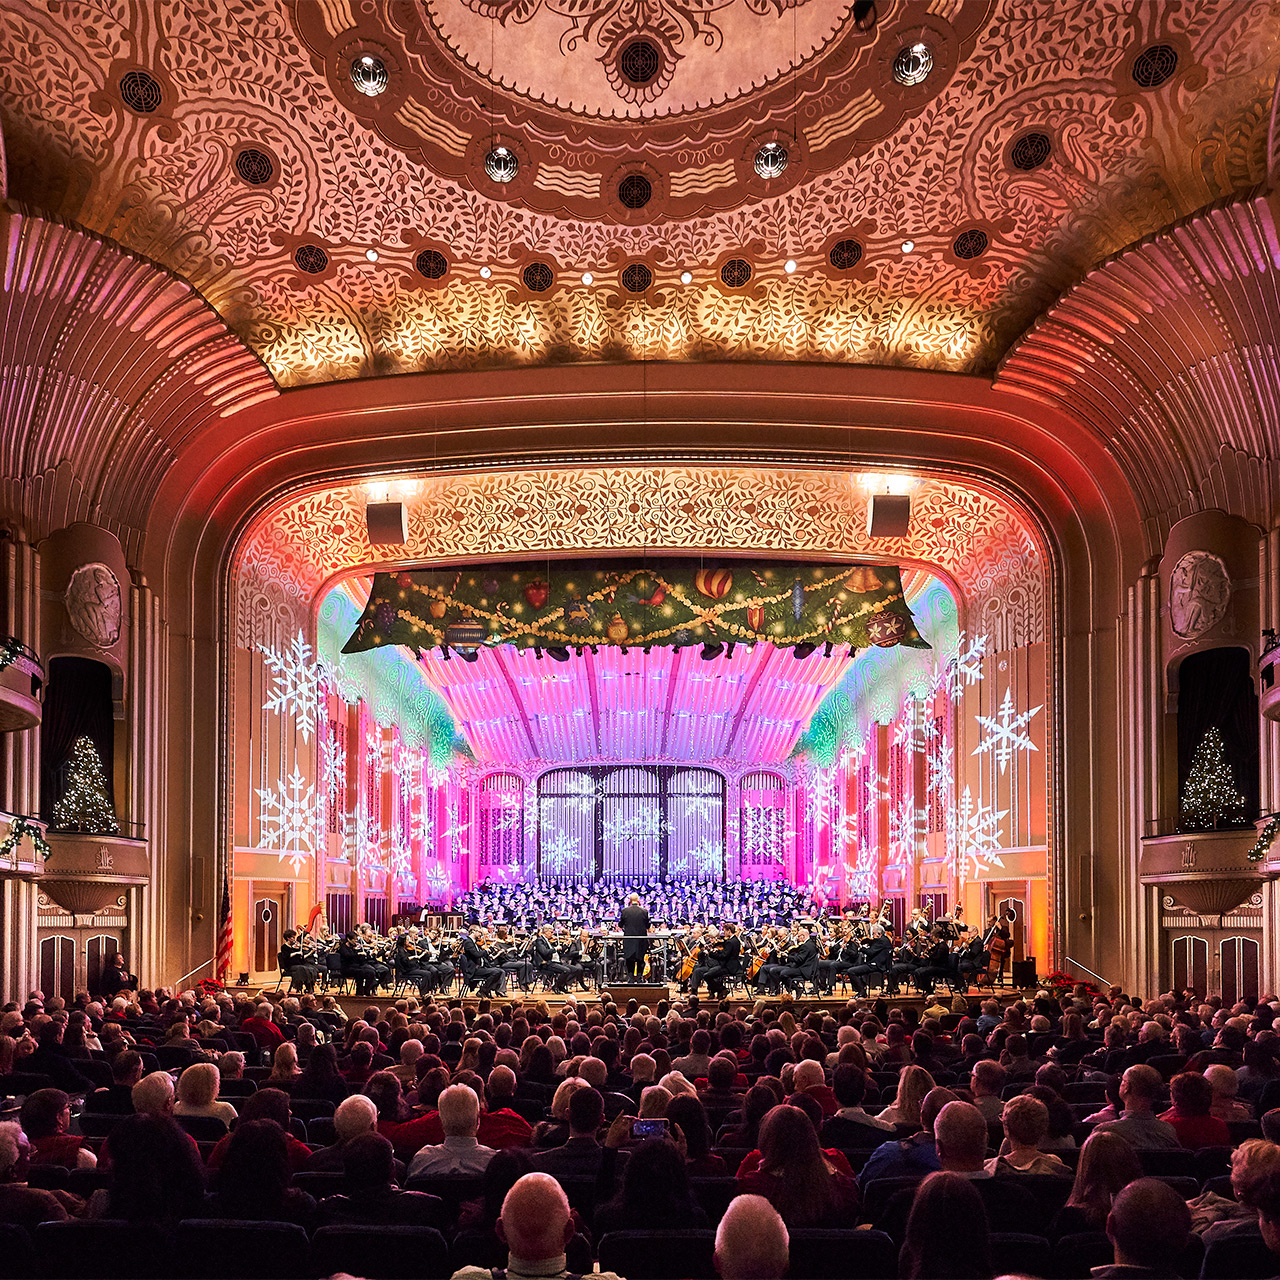 Cleveland Orchestra Christmas Concert 2021 Seasons And Series